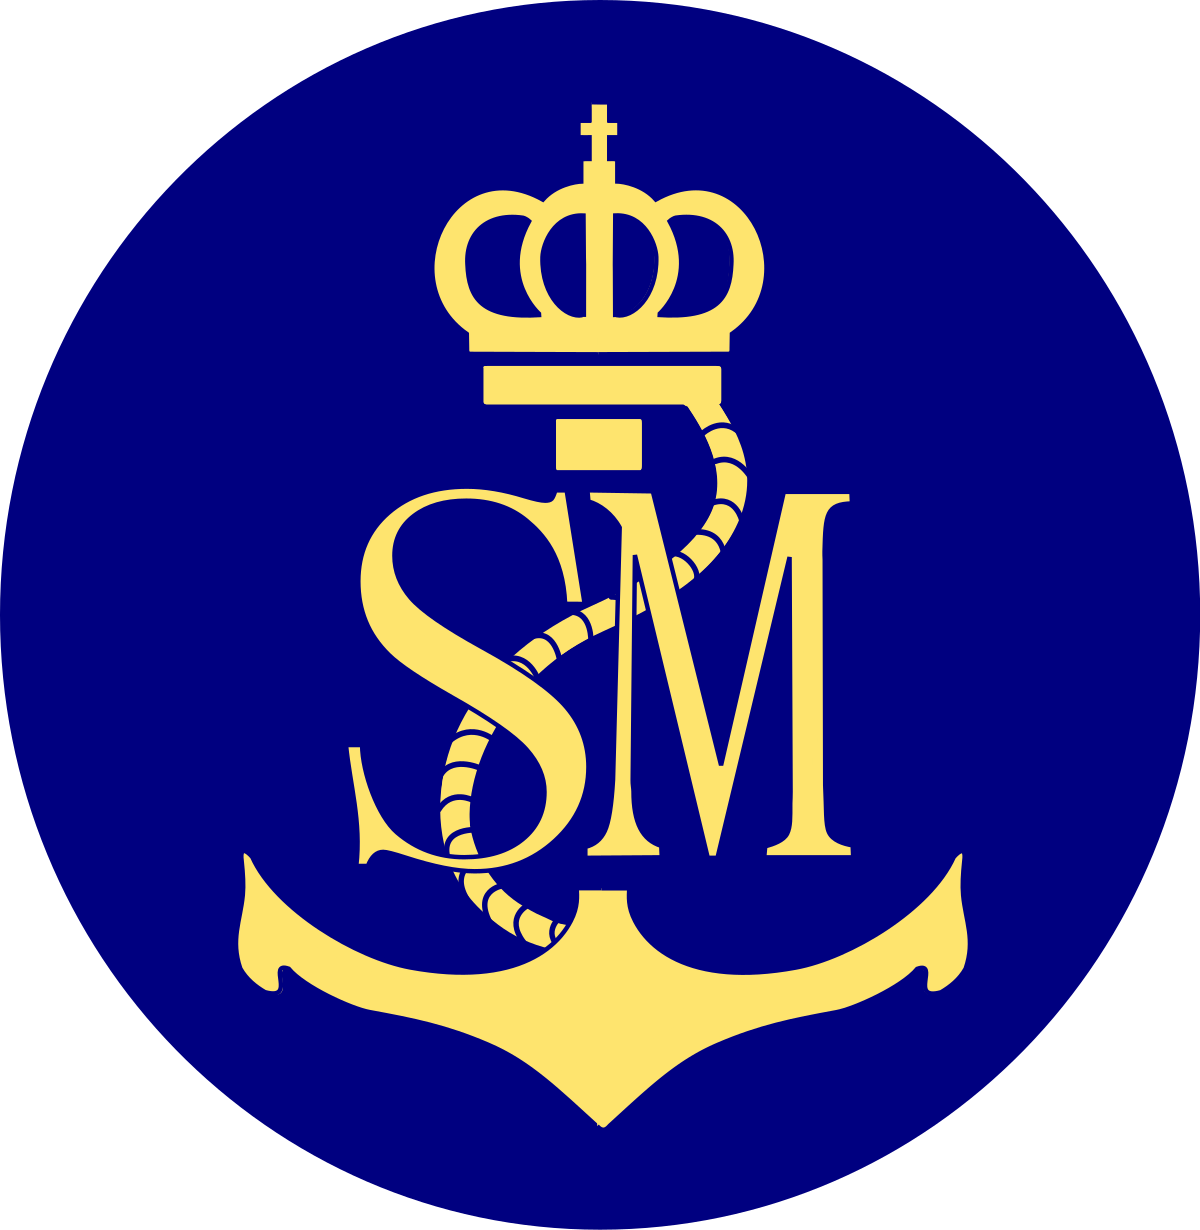 Maritime Safety and Rescue Society.